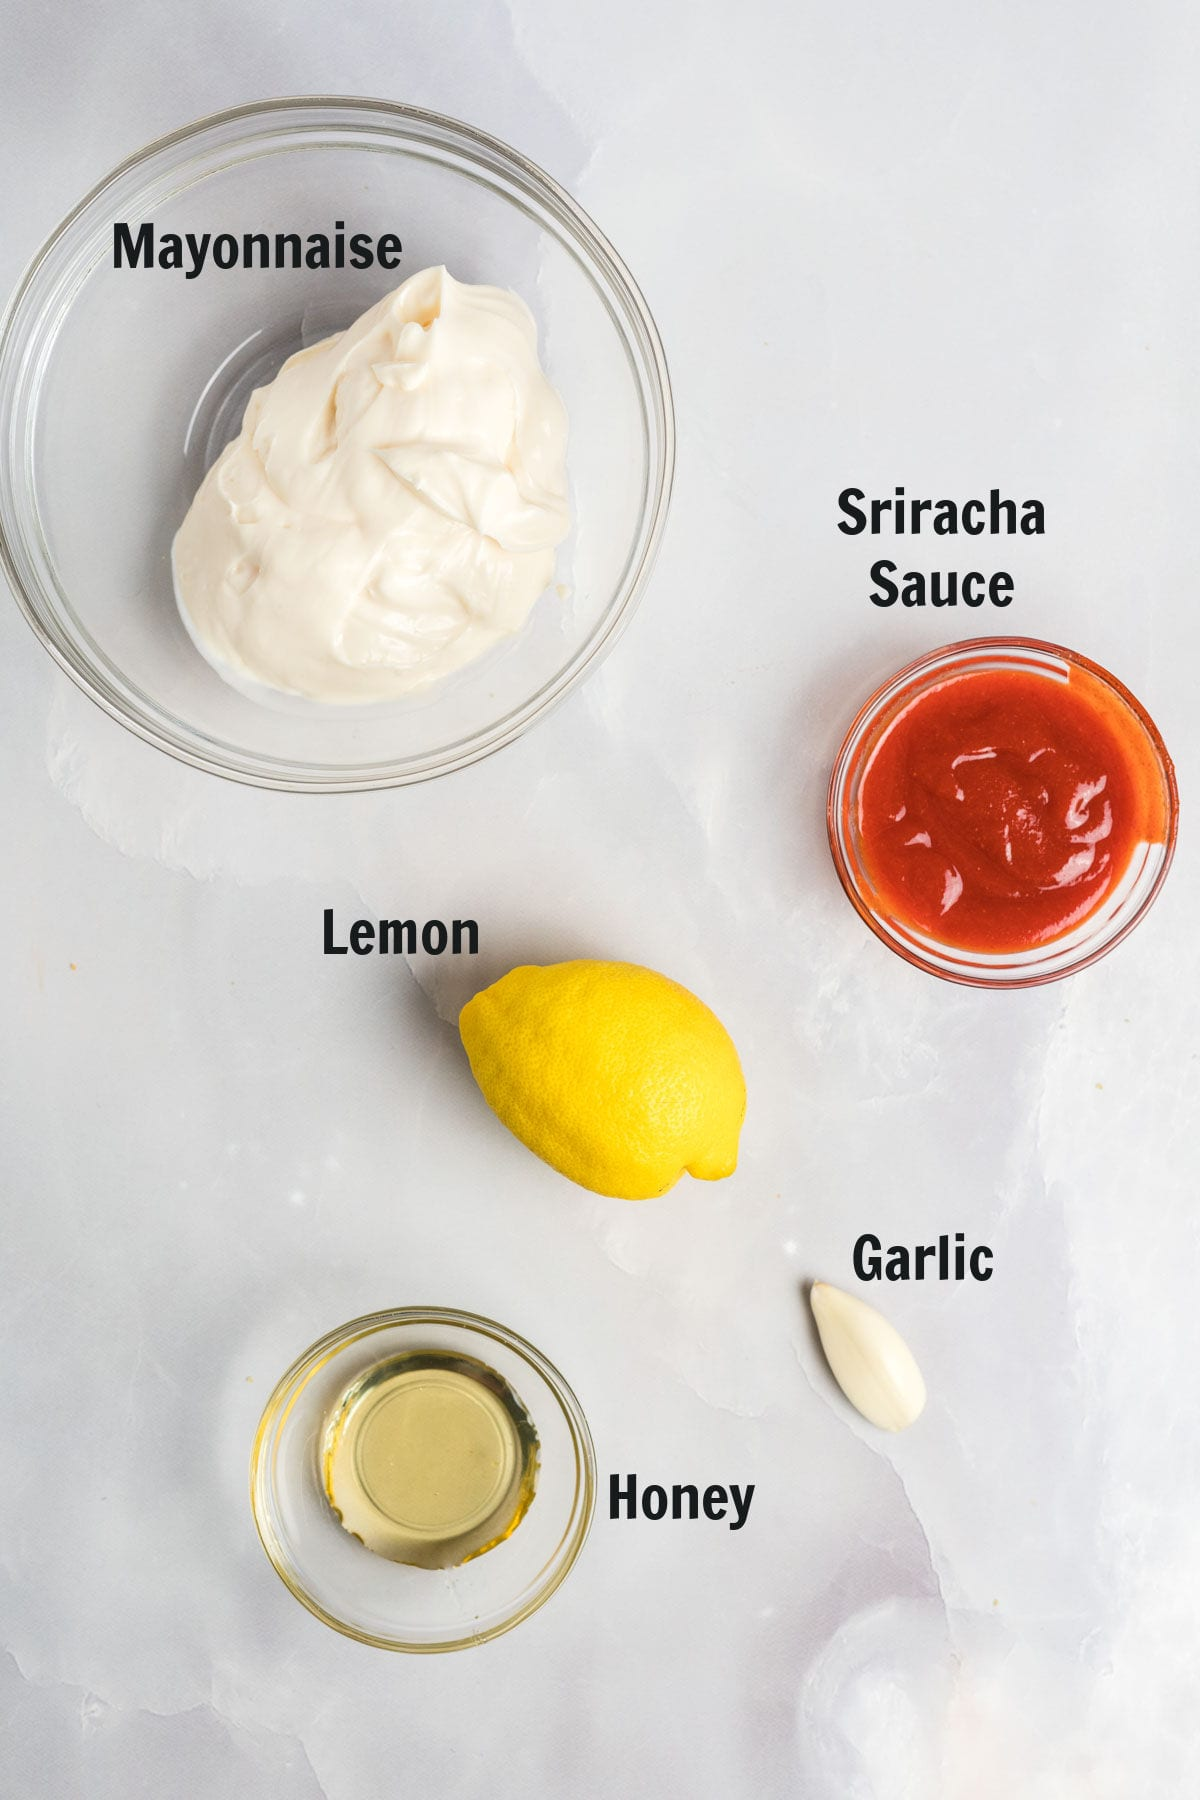 Ingredients to make spicy mayo.